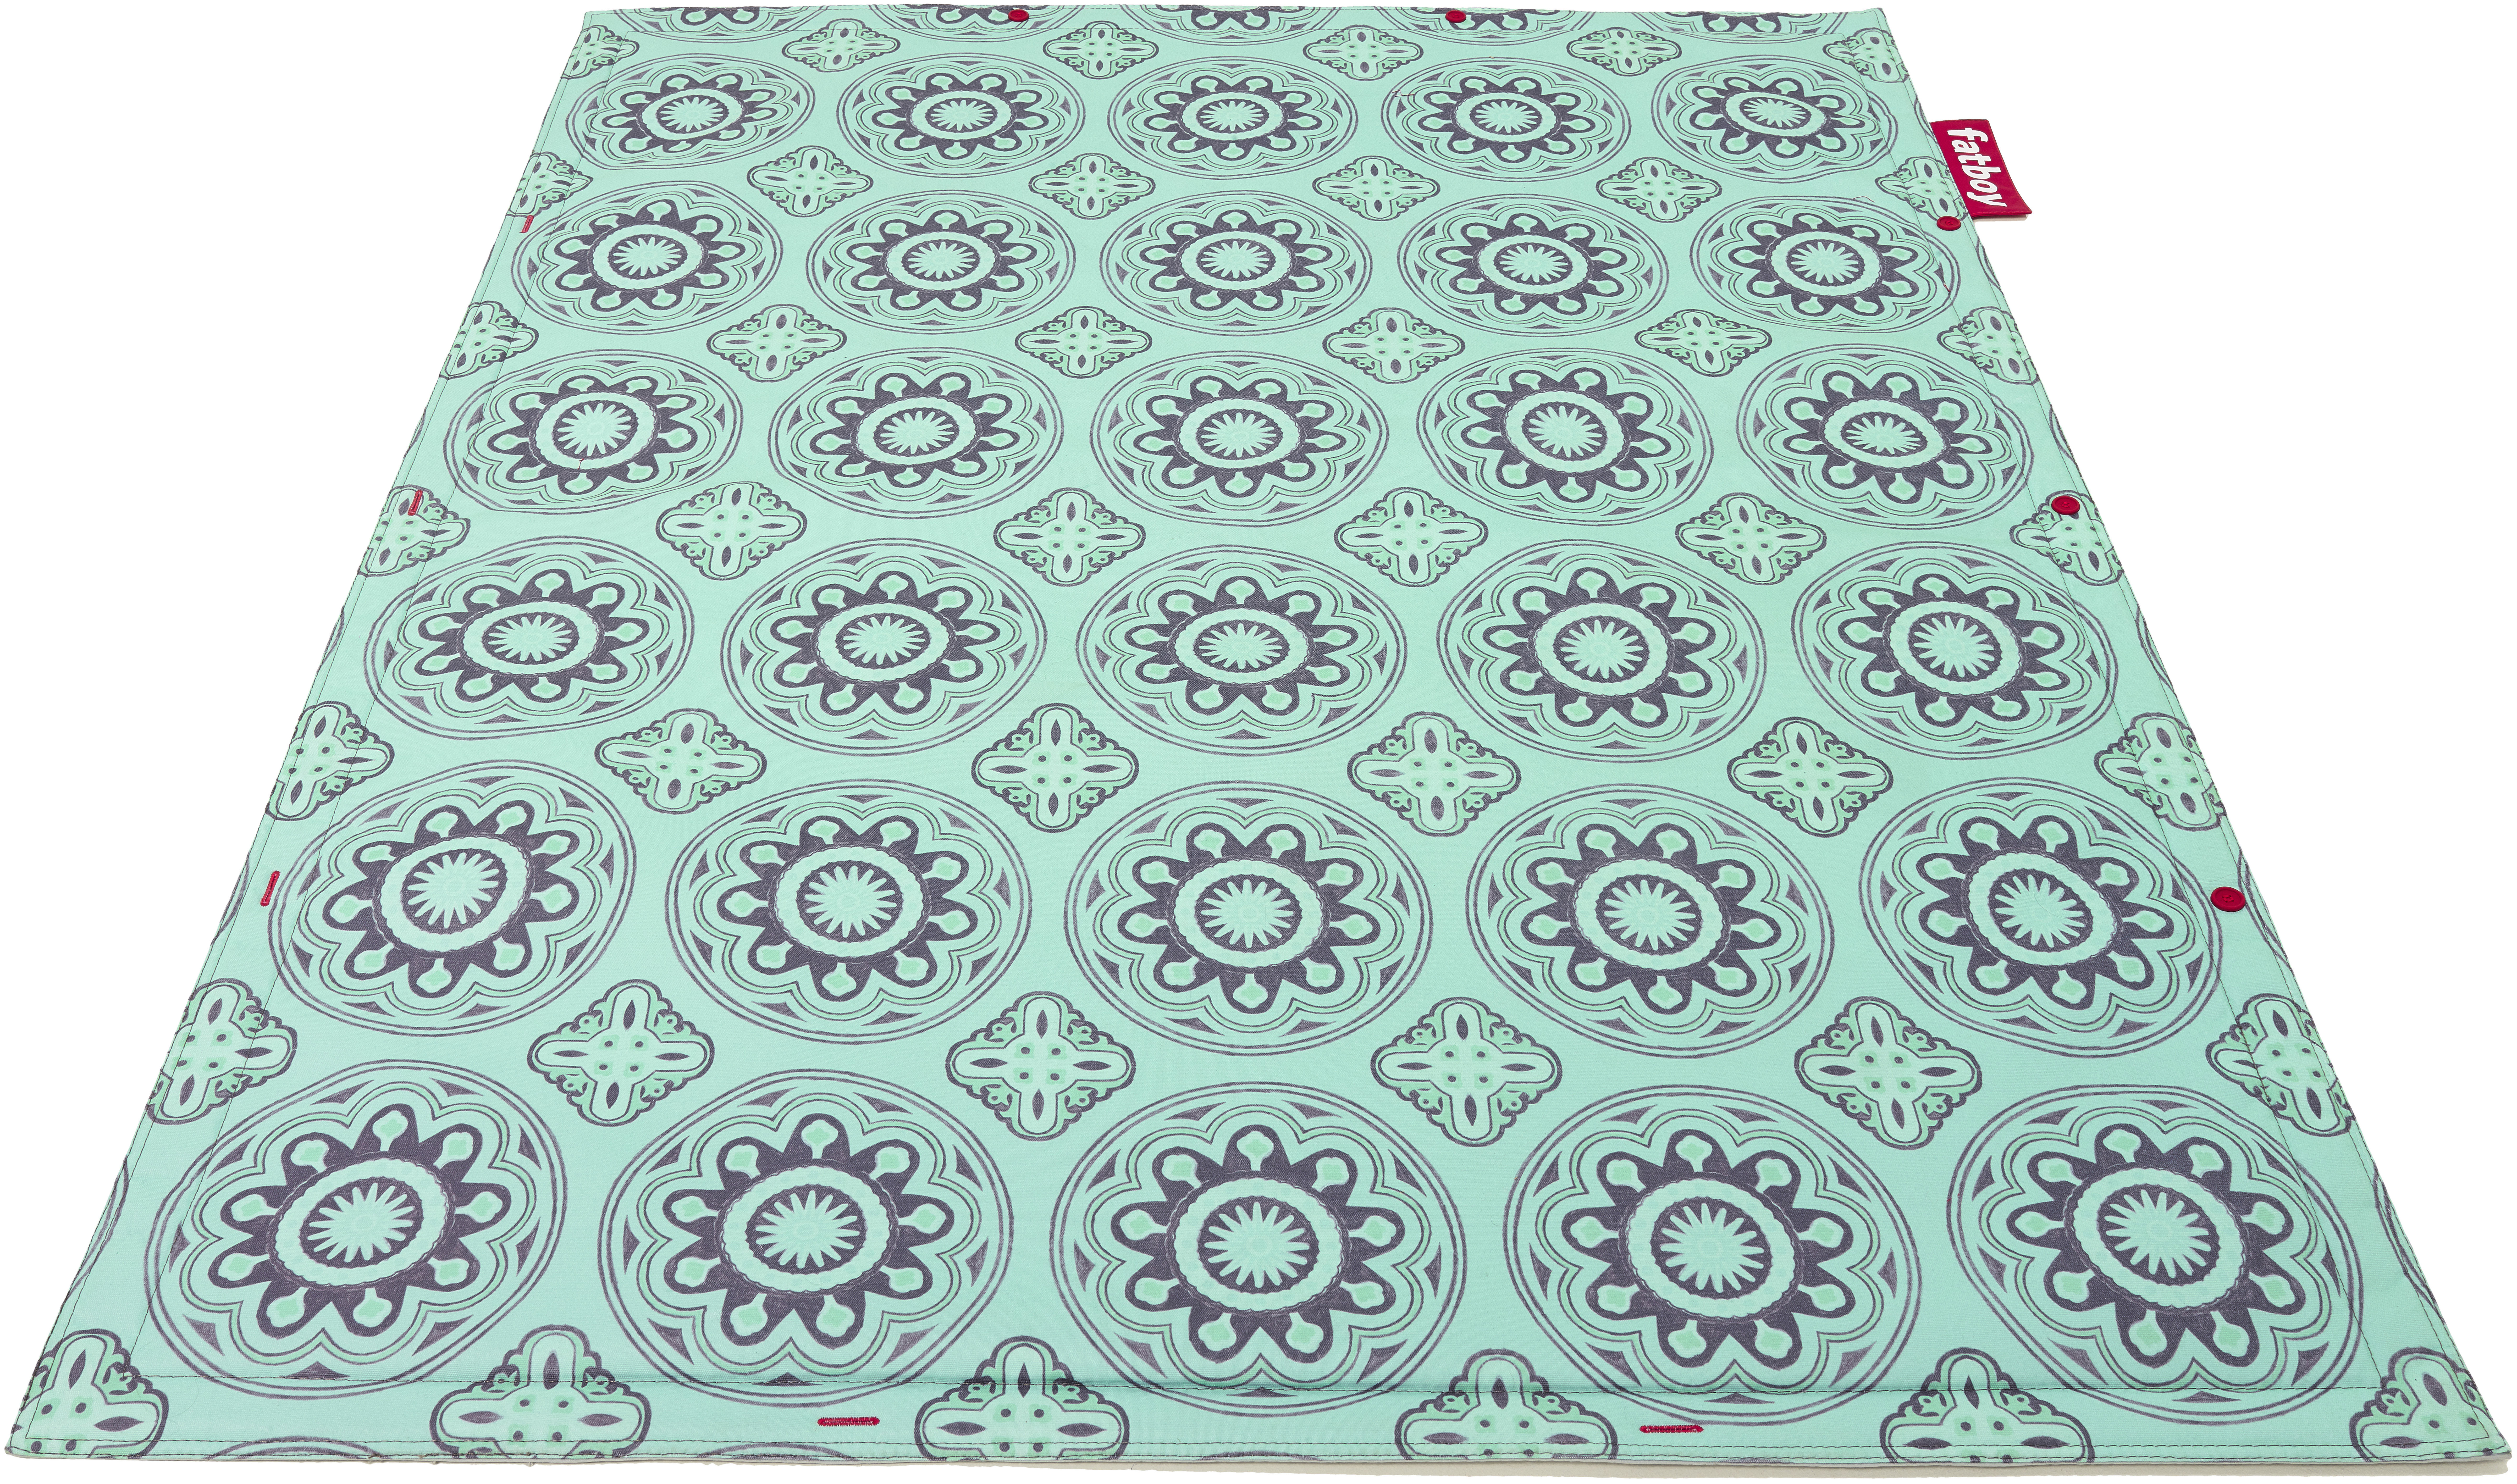 tapis dextrieur flying carpet outdoor 180 x 140 cm casablanca turquoise fatboy made in design - Tapis Exterieur